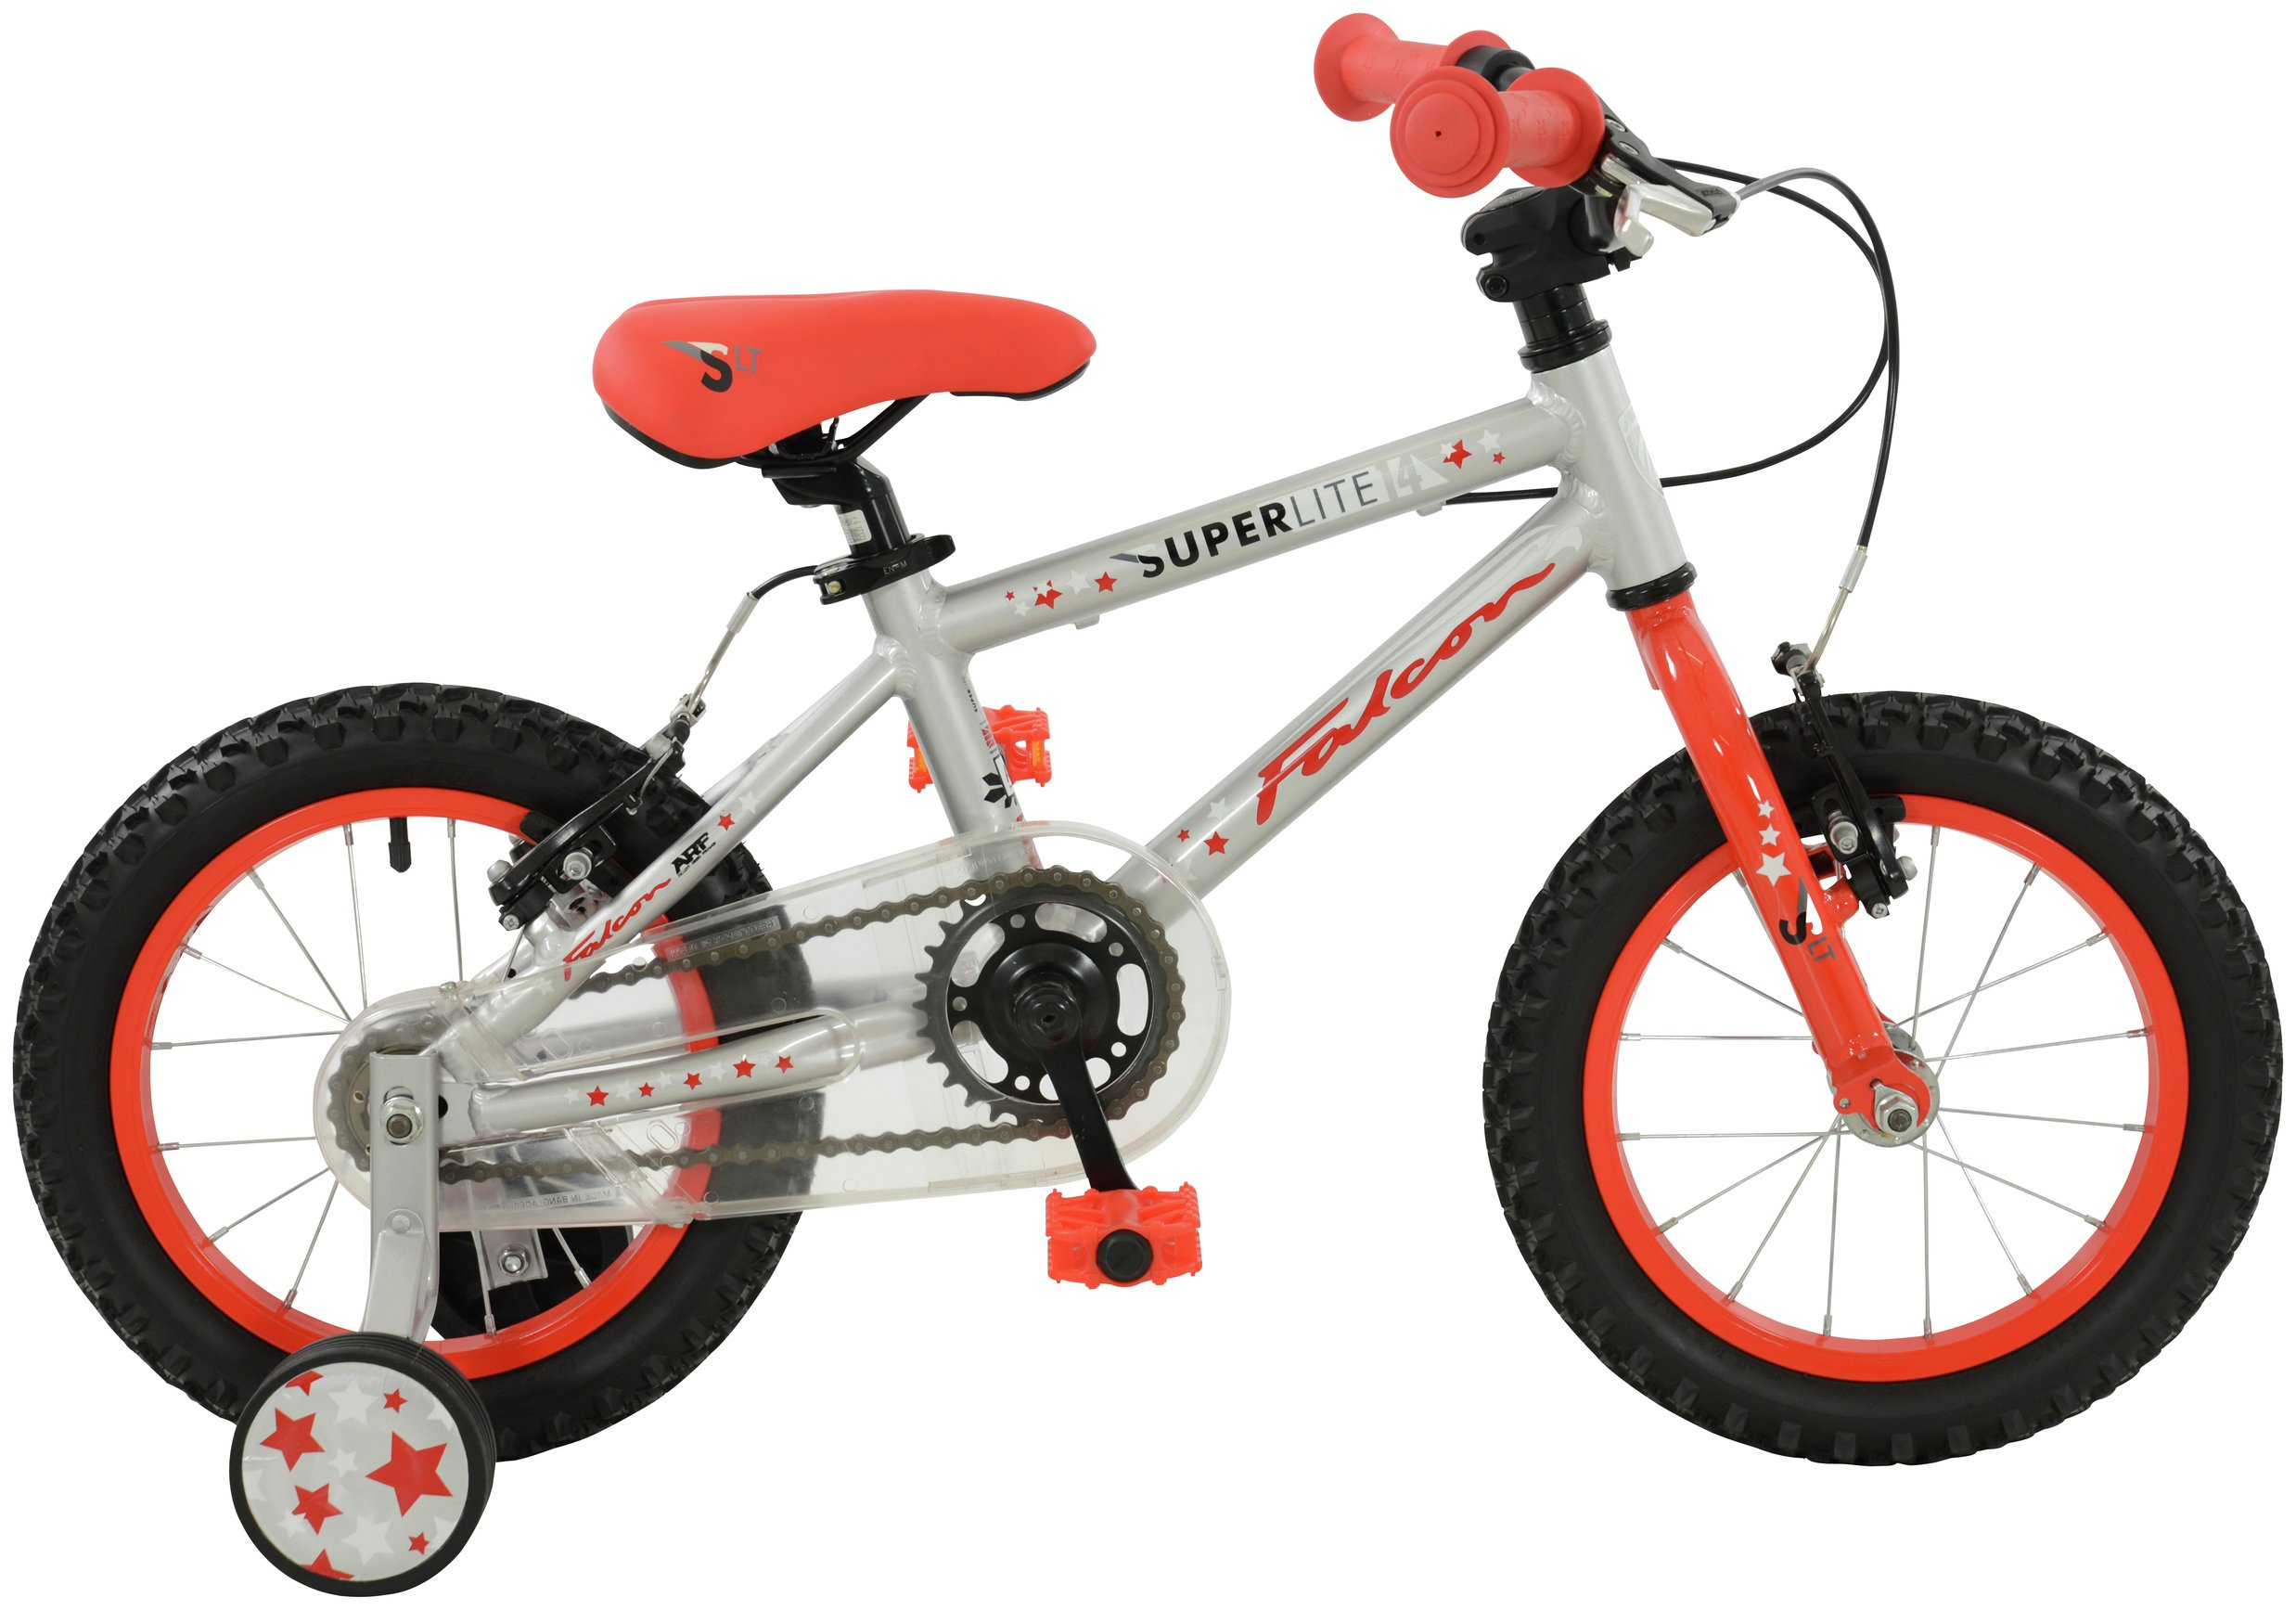 Image of Falcon Kids 14 Inch Alloy Superlite Bike - Red